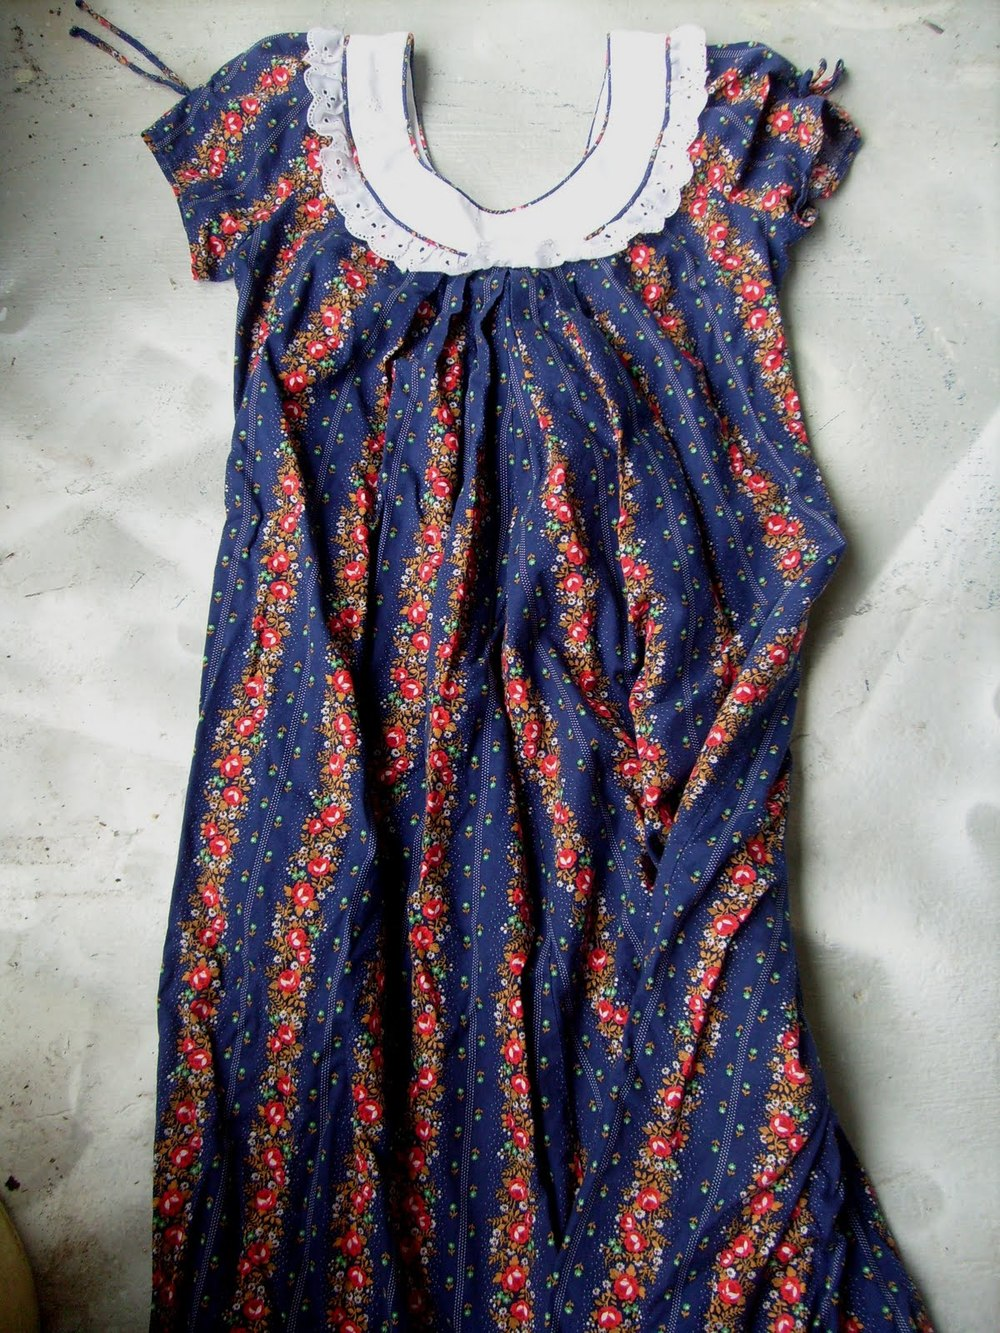 How To Reuse Old Clothes Allfreesewing Com